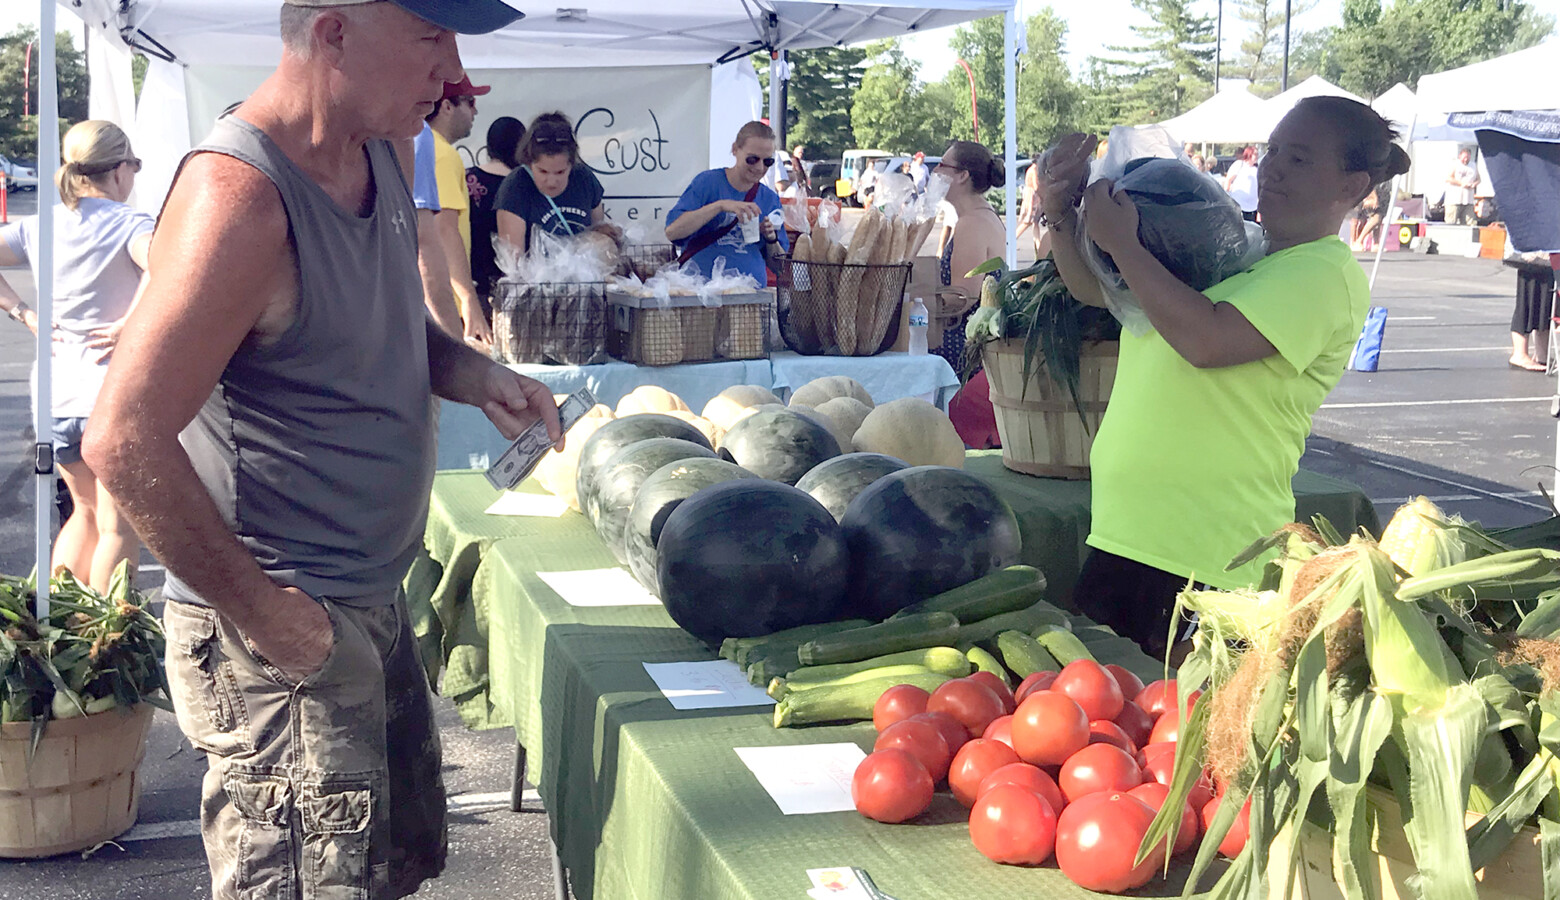 A customer purchases produce at the 2018 Columbus farmers market. (Lauren Bavis/Side Effects Public Media)